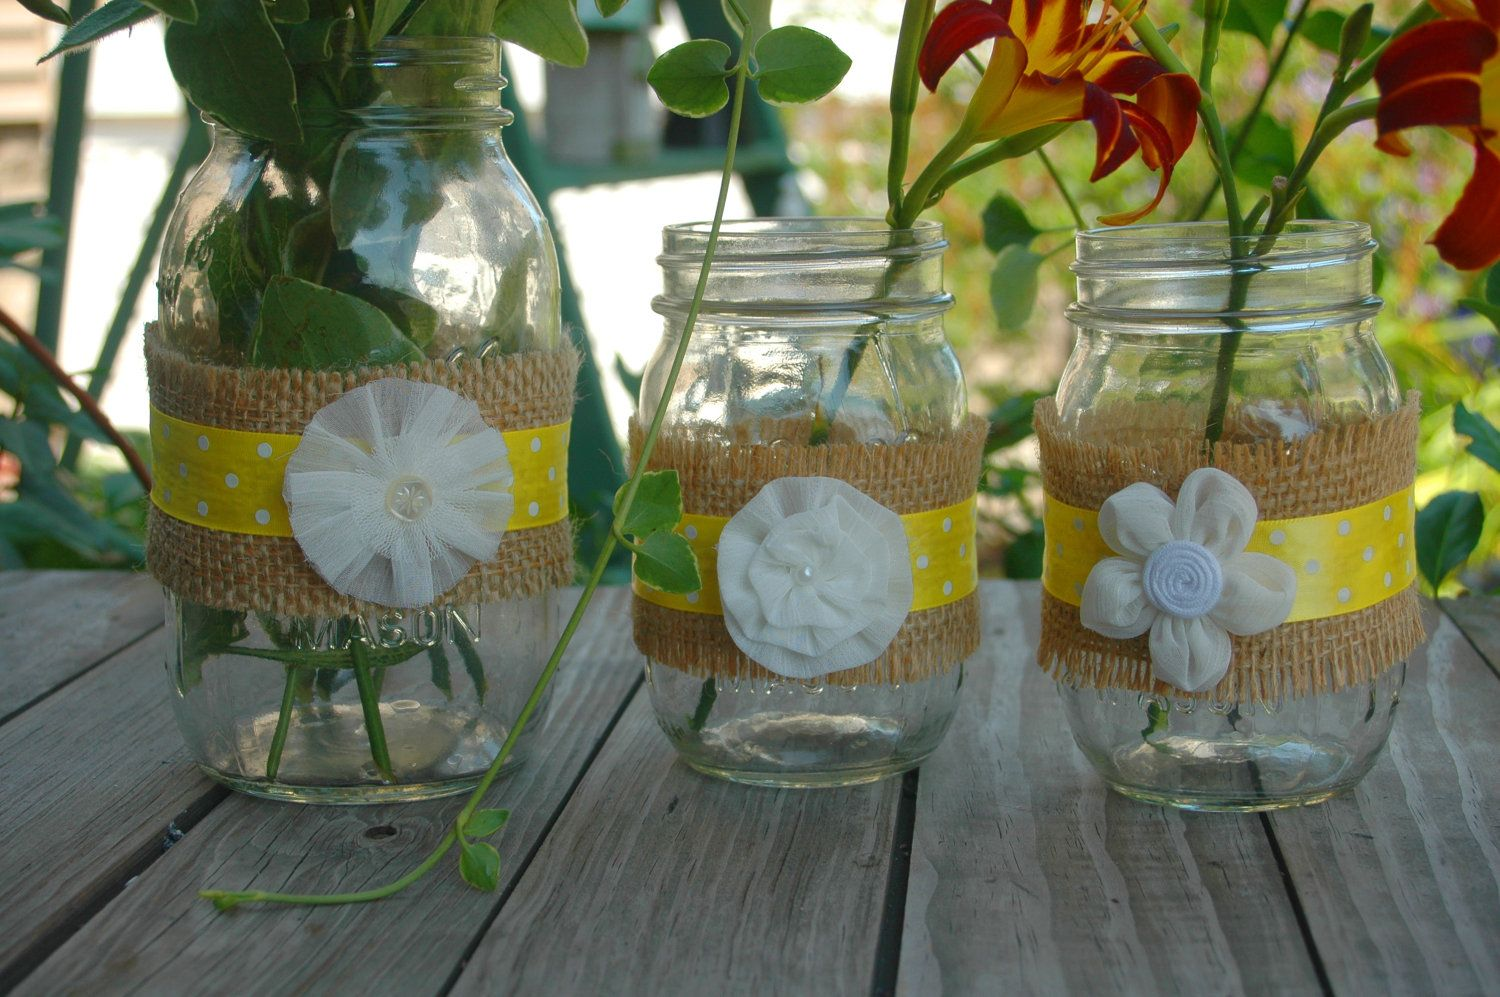 Decorating mason jars with burlap off mason jars wrapped